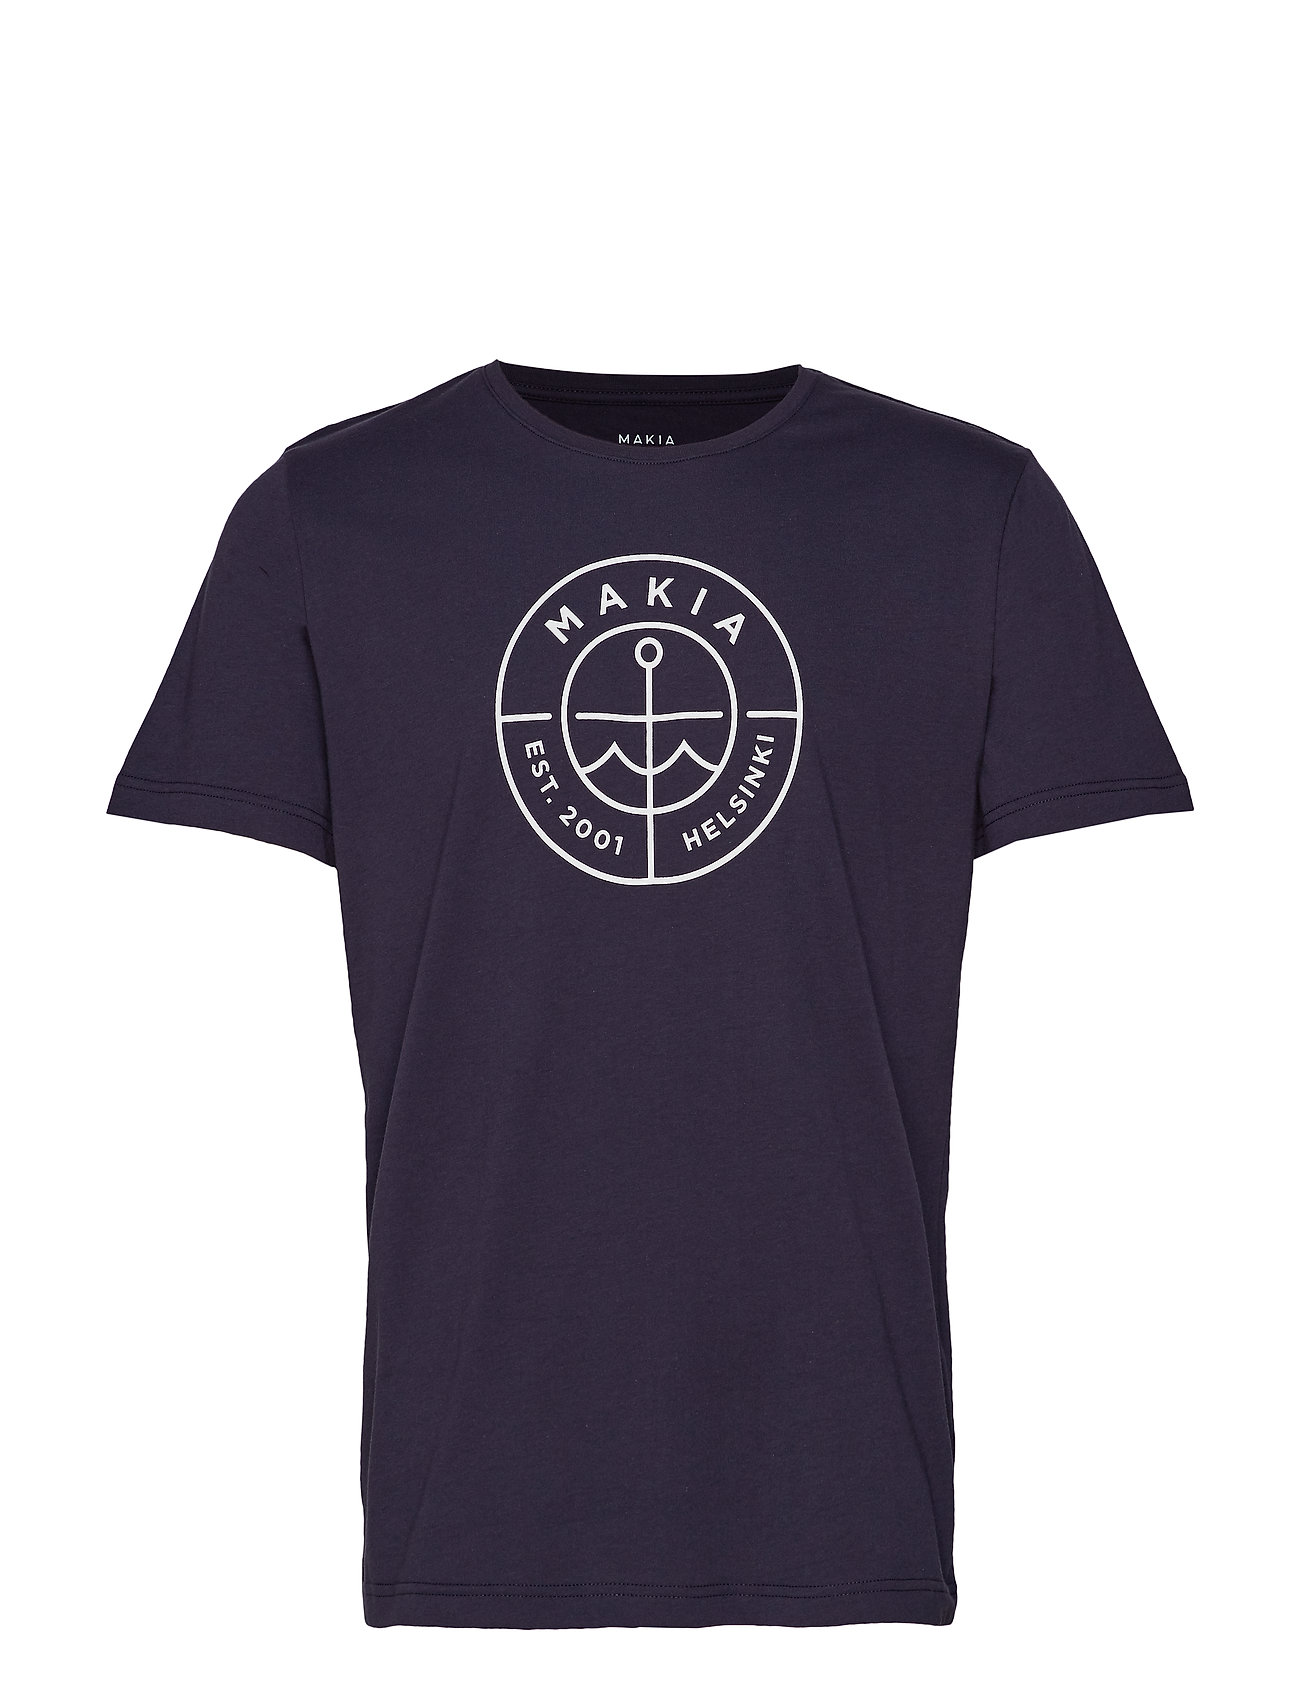 Makia Scope T-Shirt - DARK BLUE